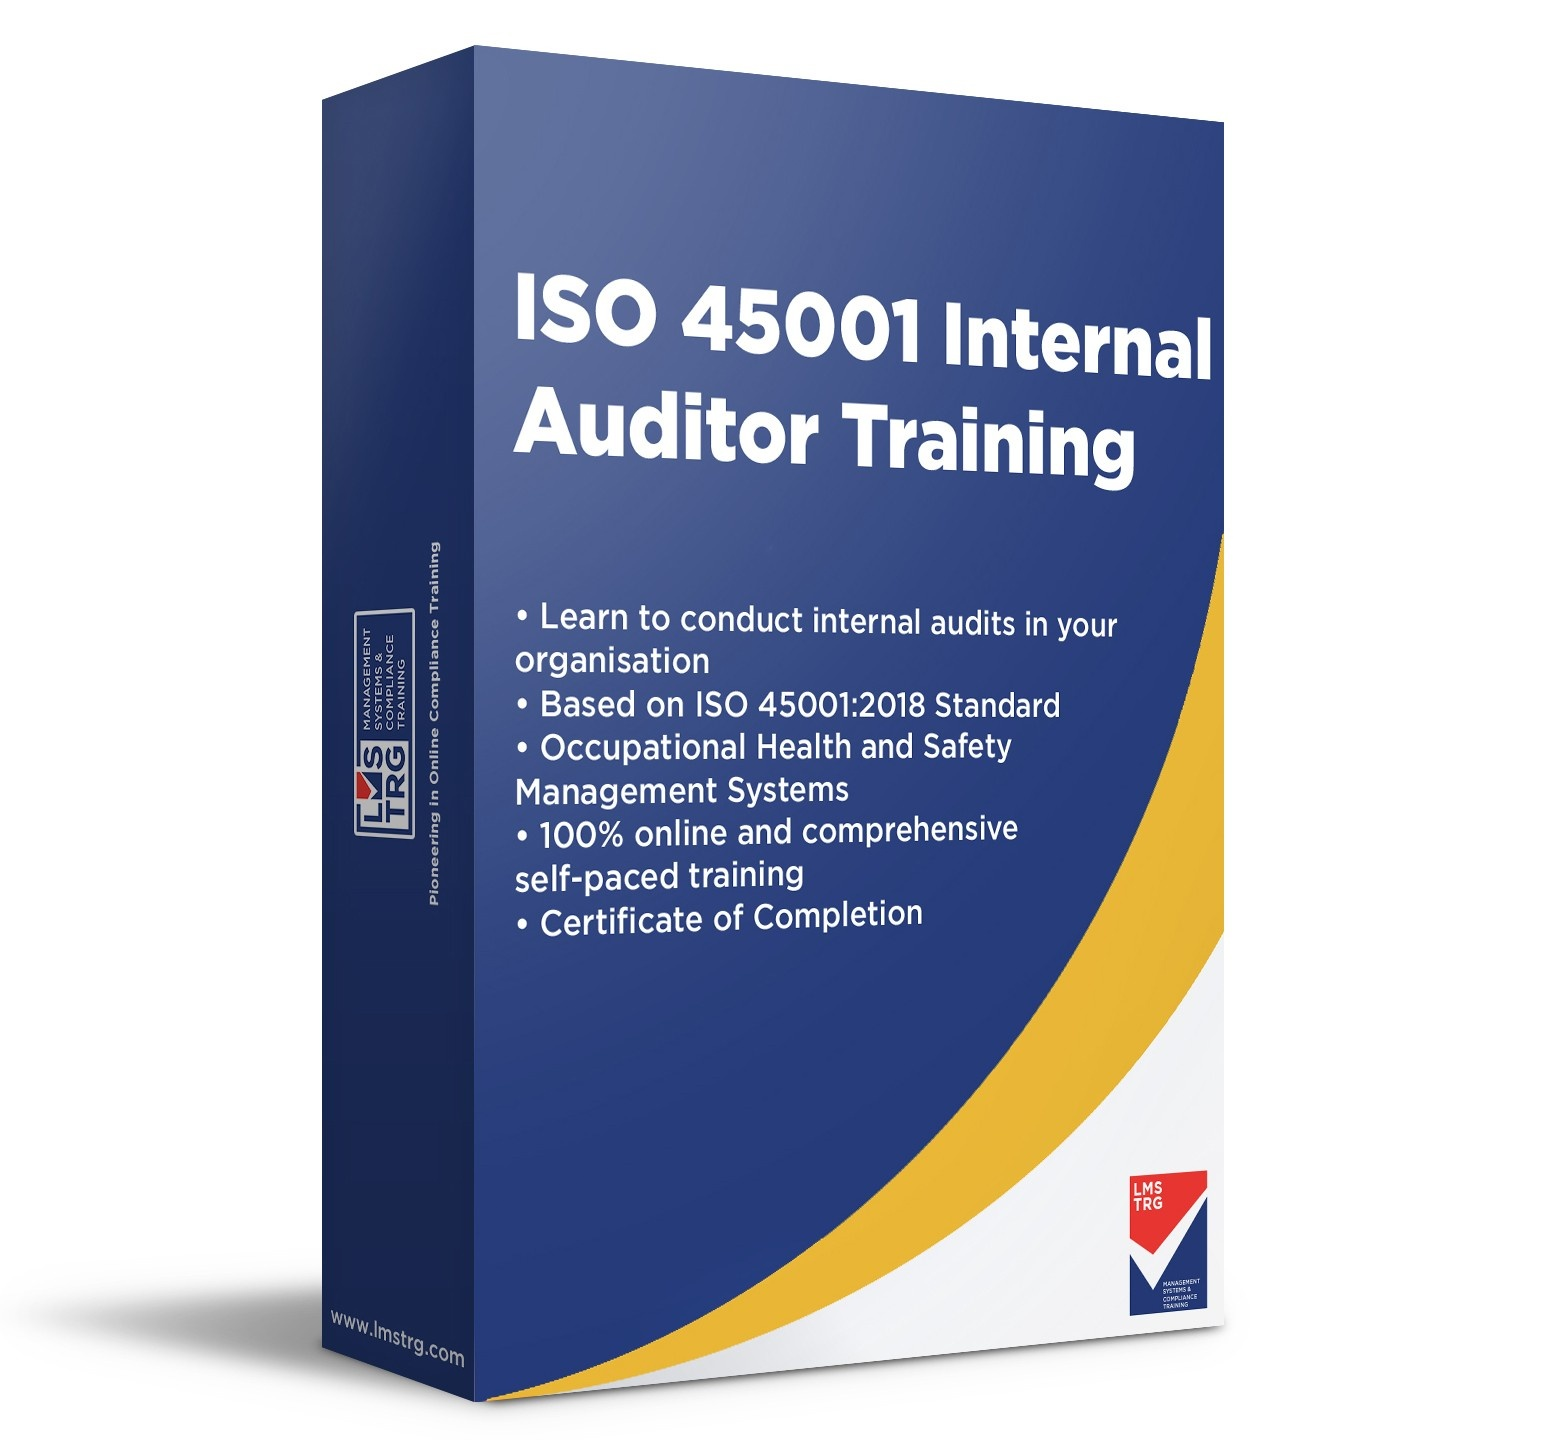 ISO 45001:2018 OH&S Internal Auditor Training